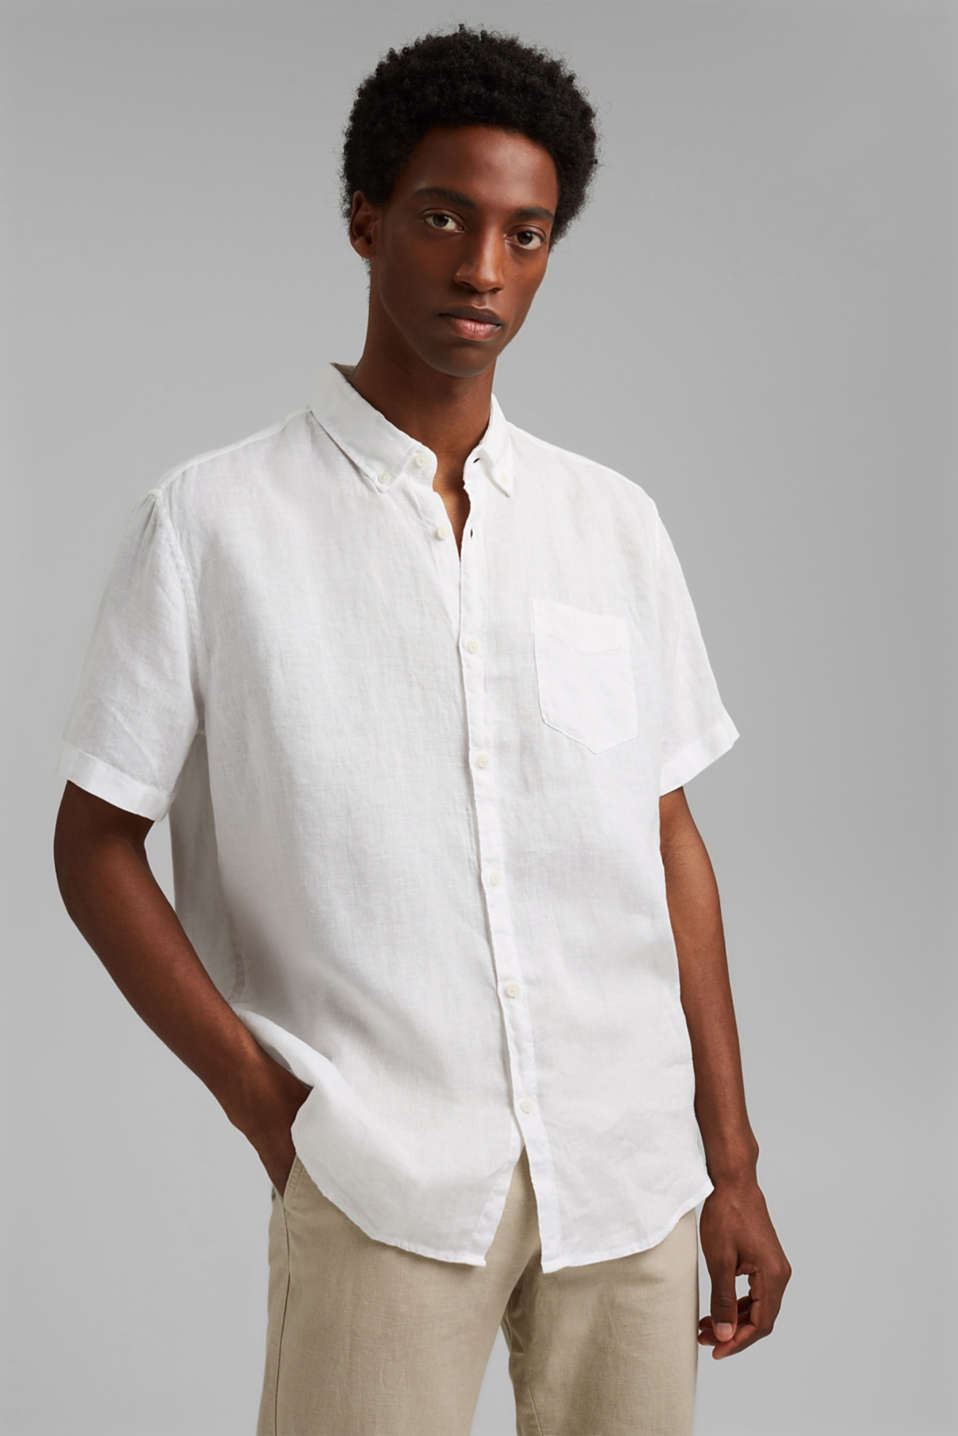 Esprit - #ReimagineNaturalLifestyle: Shirt made of linen